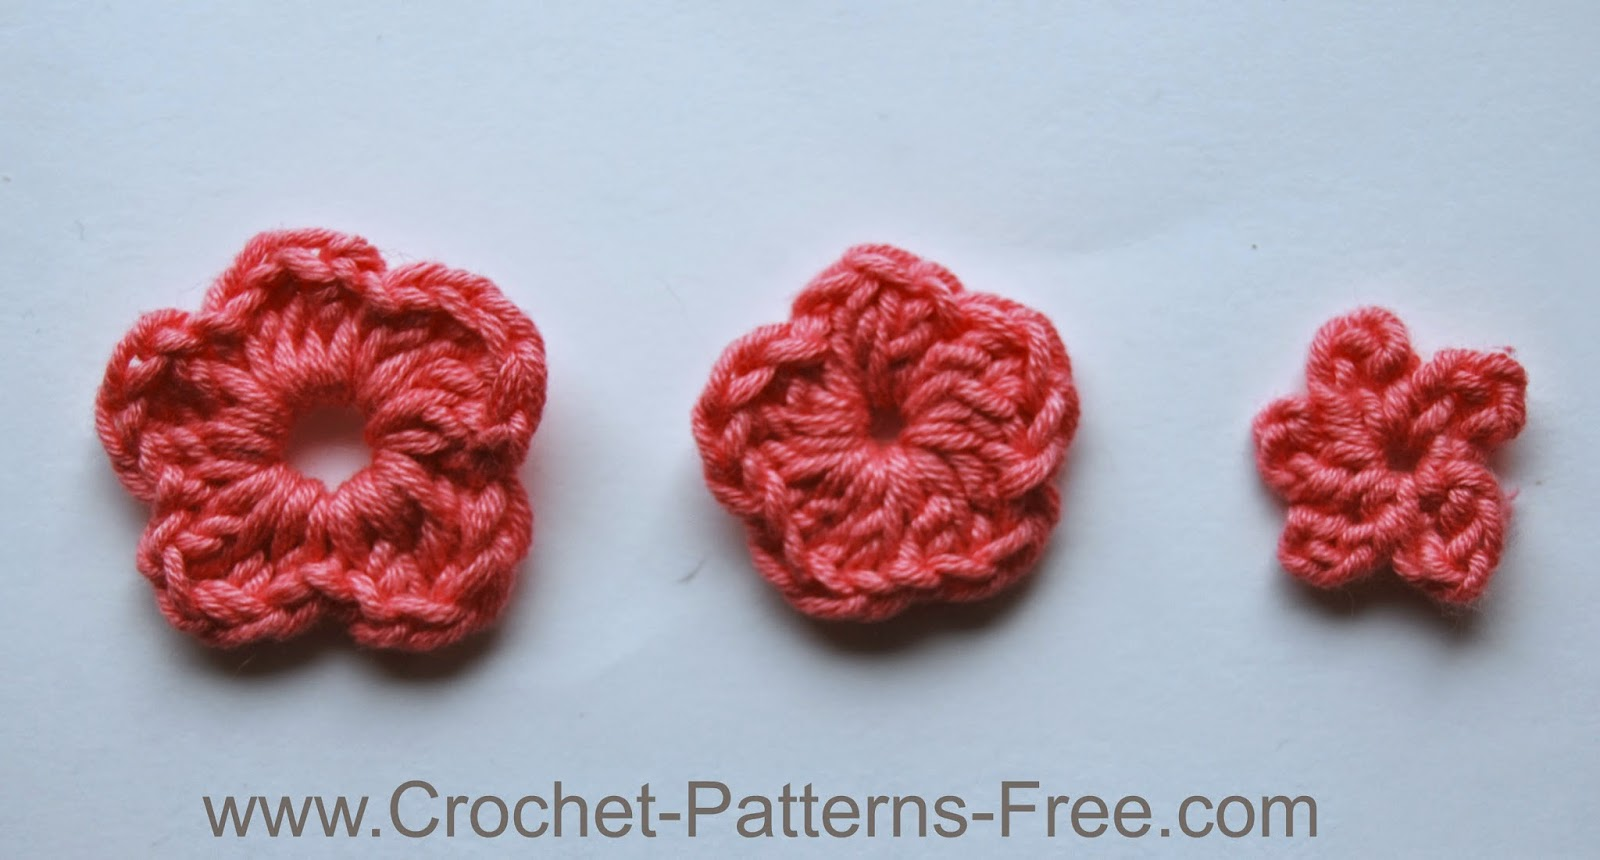 Small Crochet Flower Patterns (Free Crochet Patterns ...